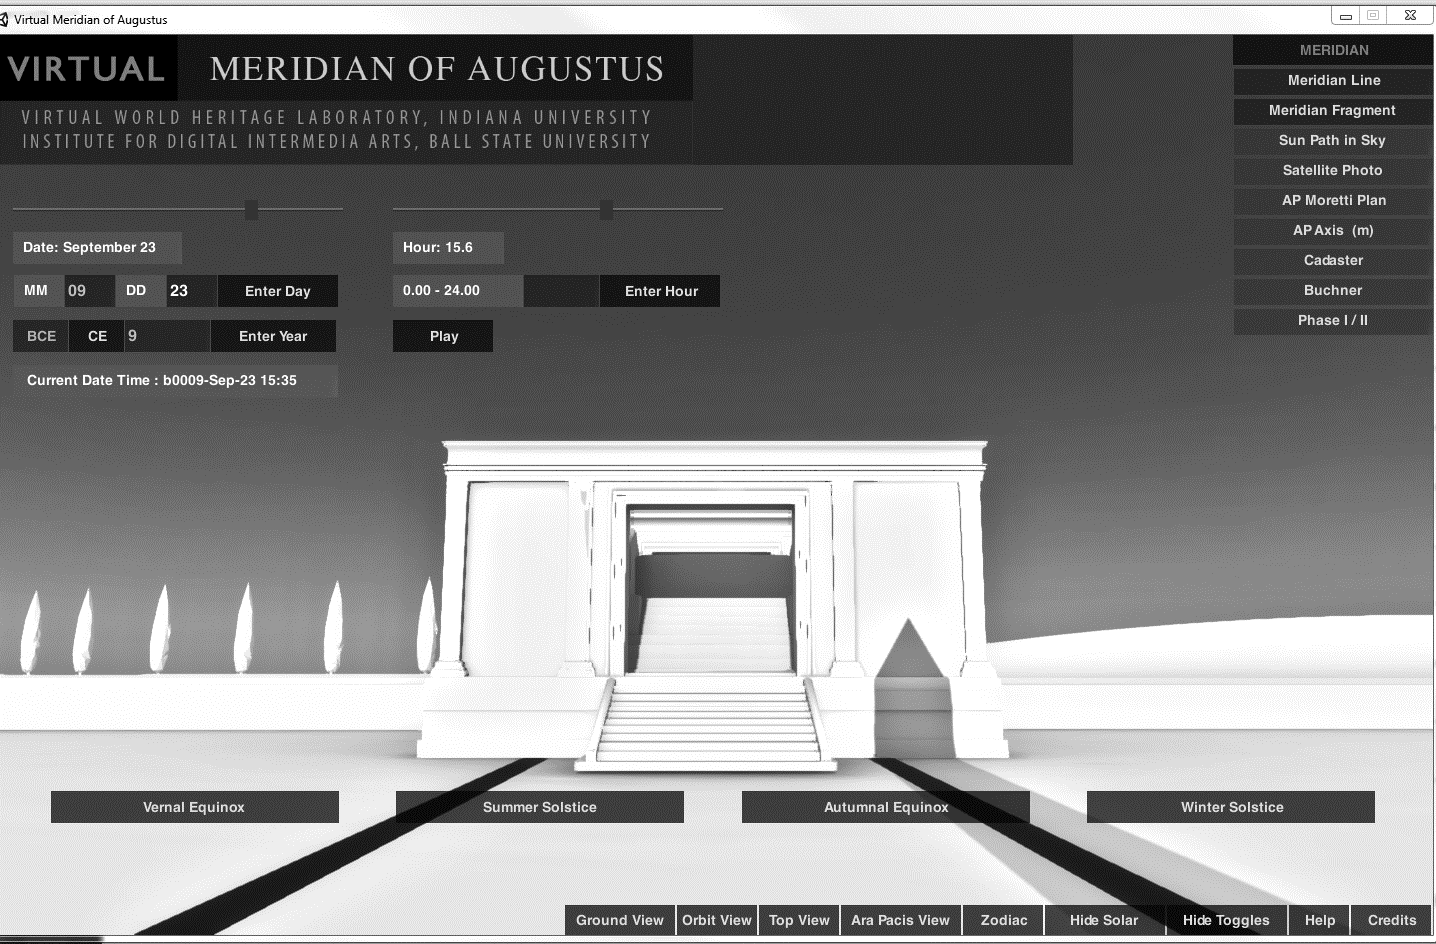 Results of virtual fieldwork: testing Buchner s theory The computer simulation was used to test whether the shadow of the obelisk moves